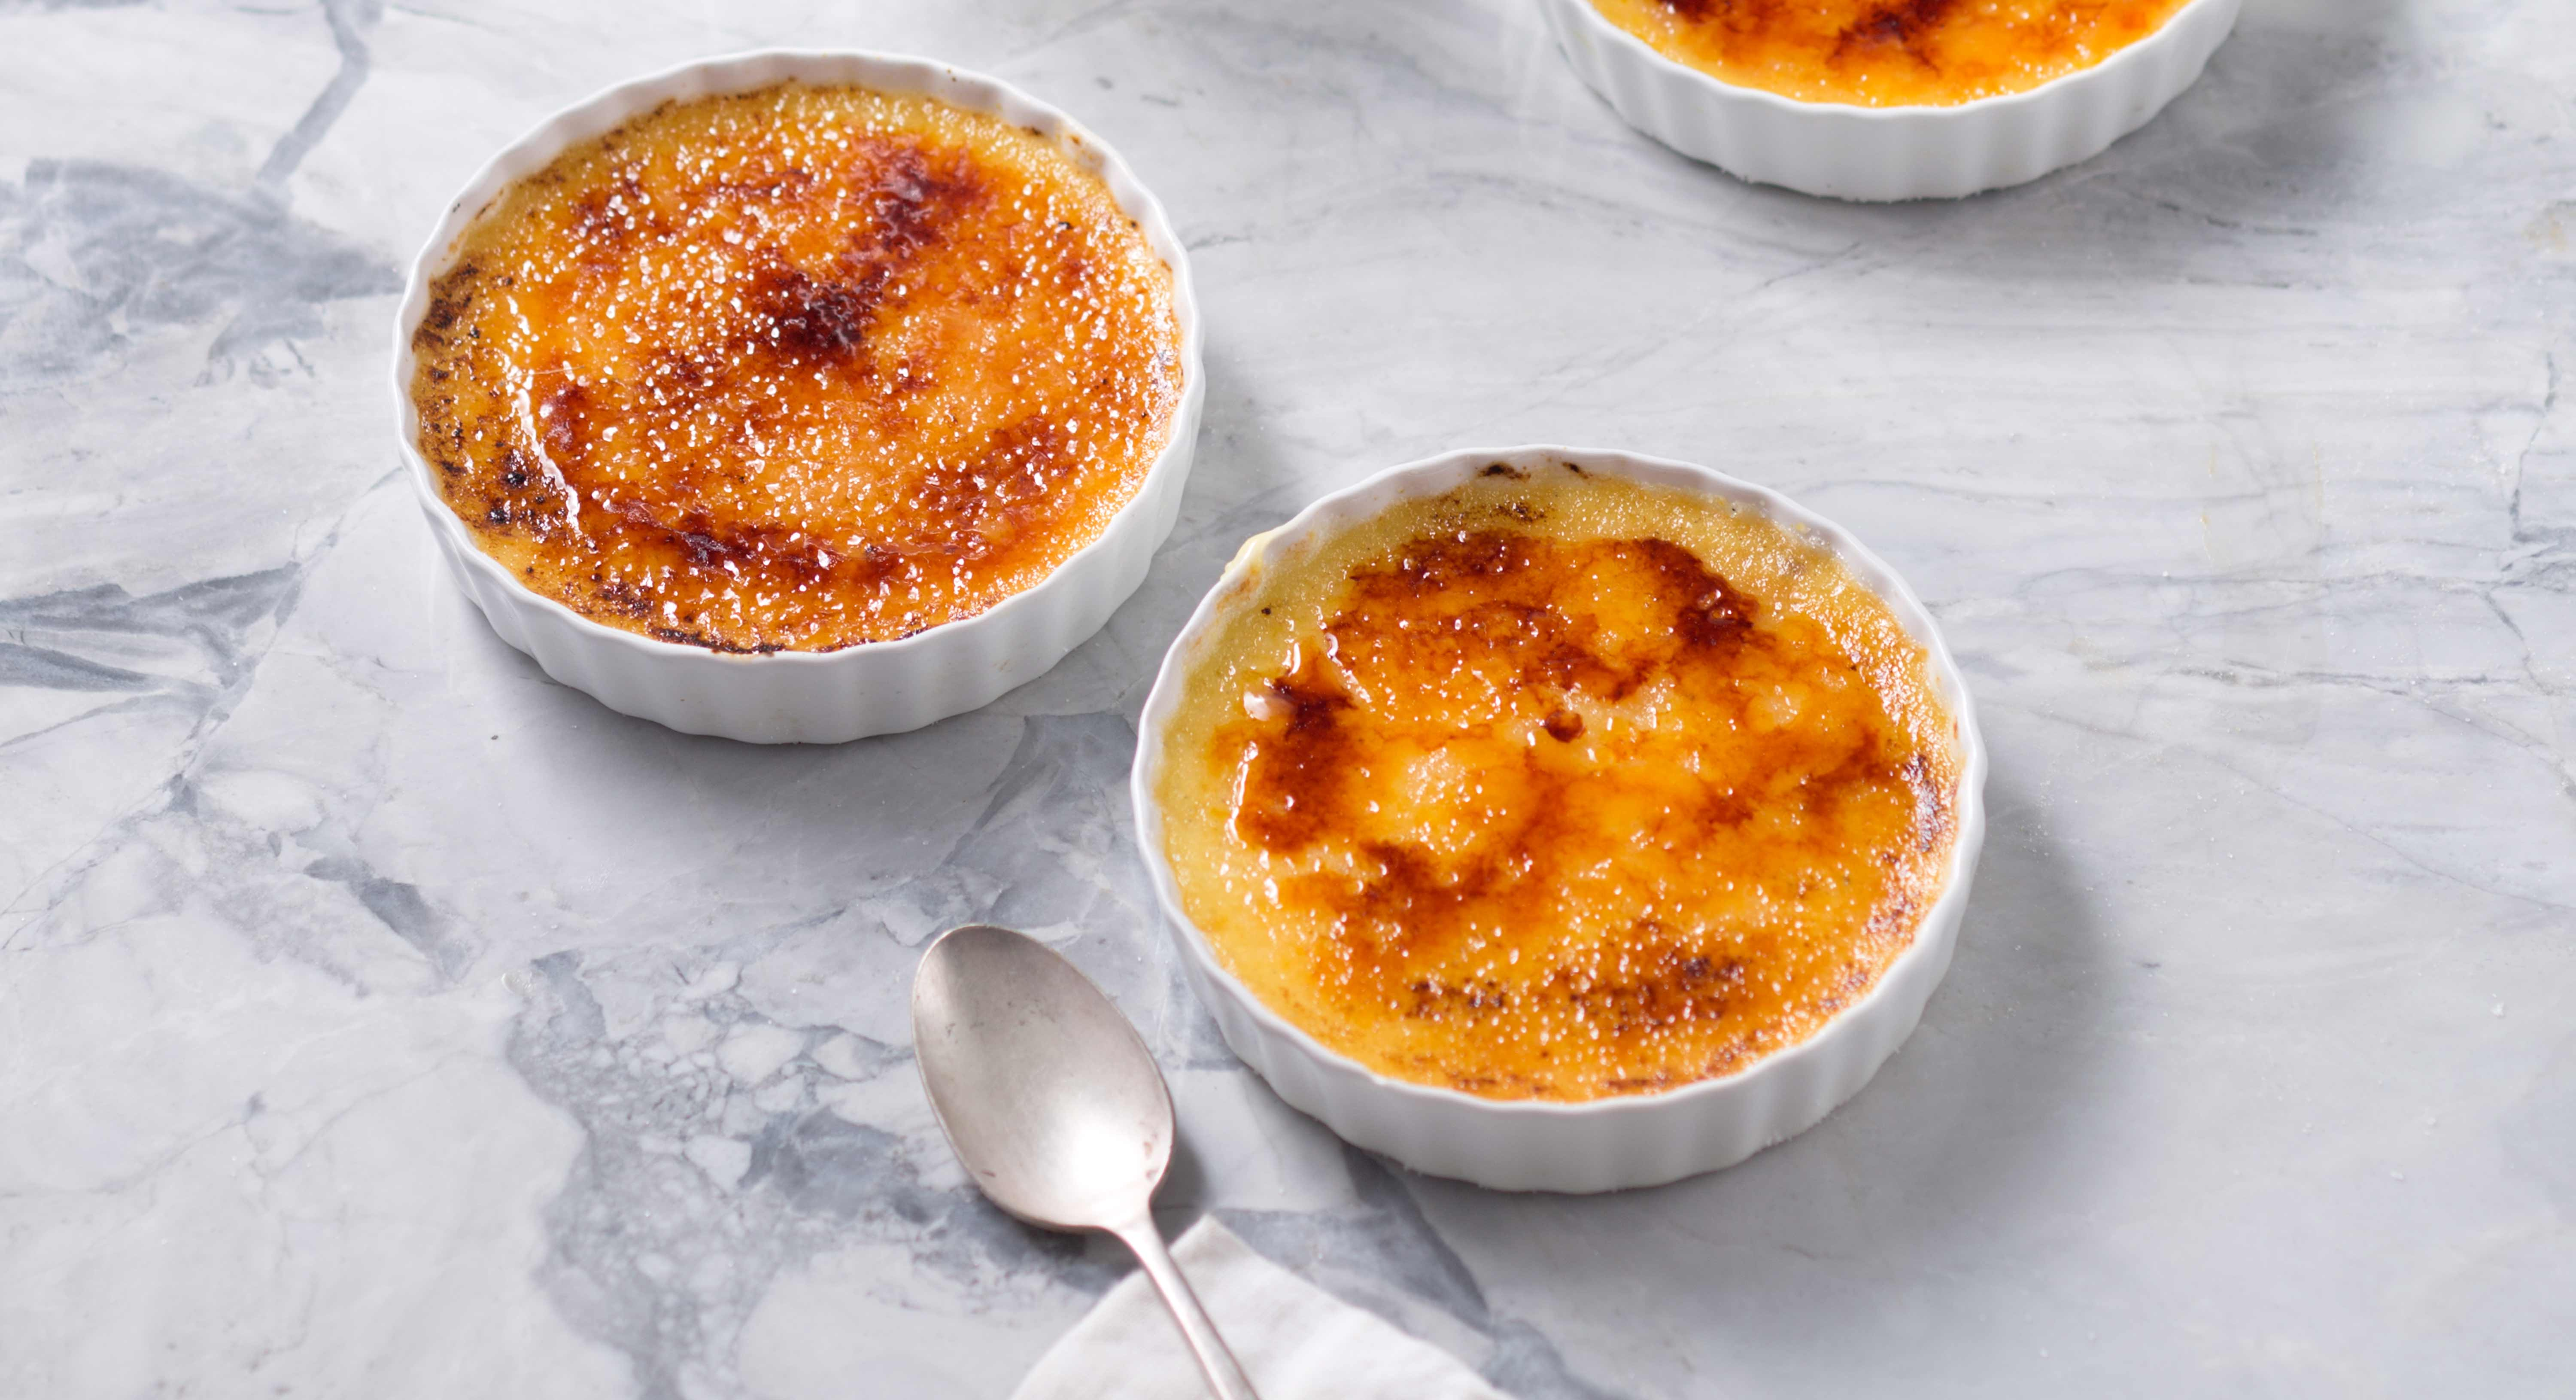 This Paleo-Friendly Coconut Creme Brulee Is the Dessert of Our Dreams